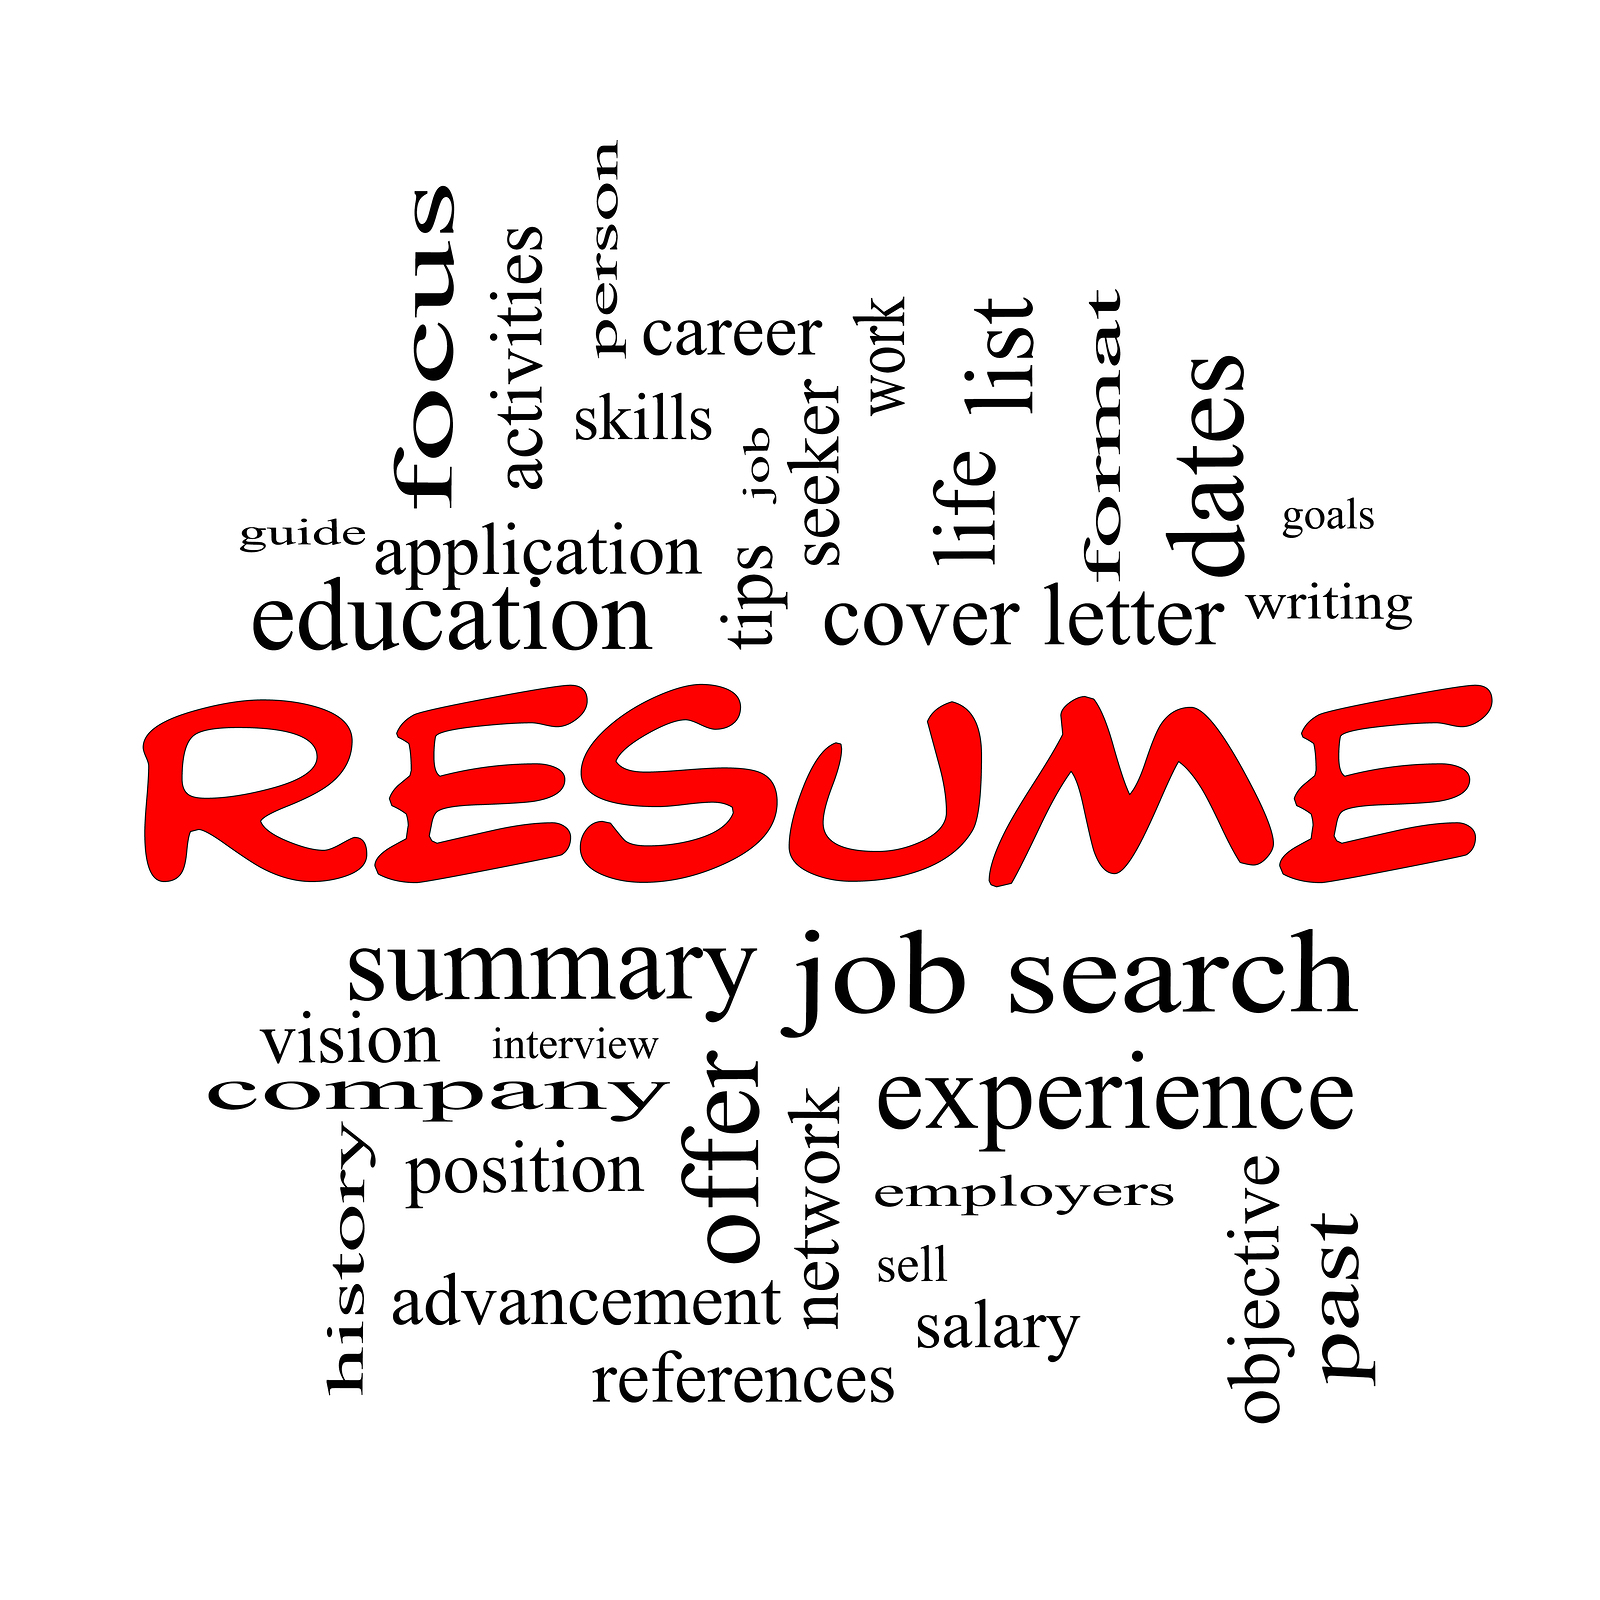 Resume Services Fair Proofreading Copy Editing And Resume Services